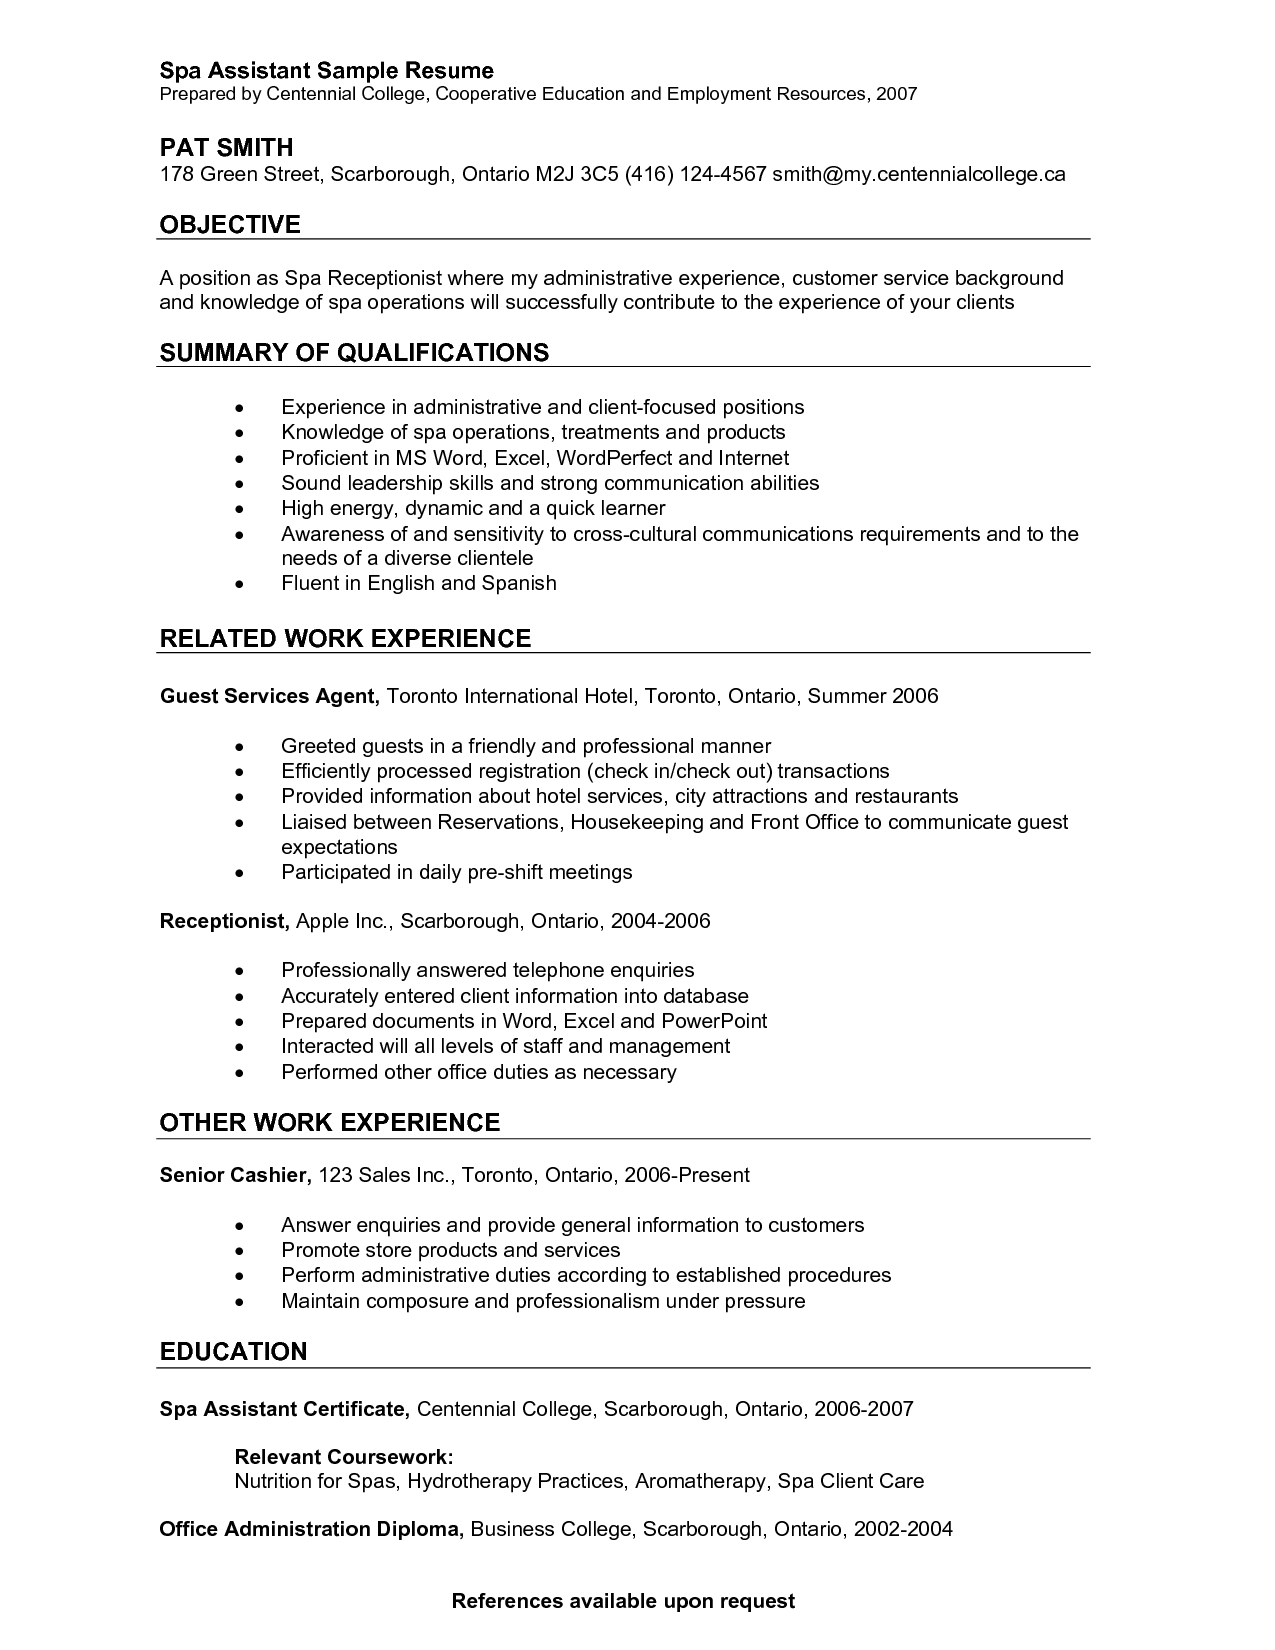 Receptionist Resume Sample Medical Receptionist Resume Objective Samples  Resume  Pinterest